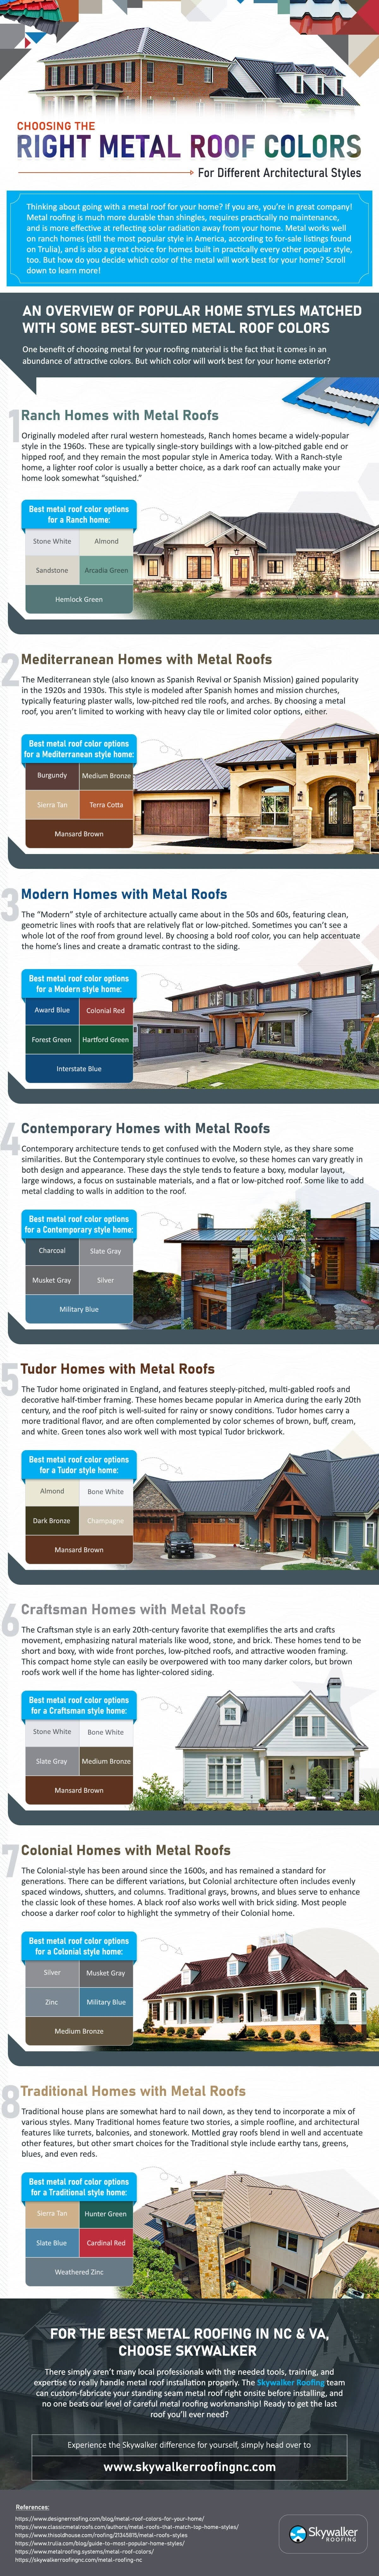 Choosing the Right Metal Roof Colors for Different Architectural Styles #infographic